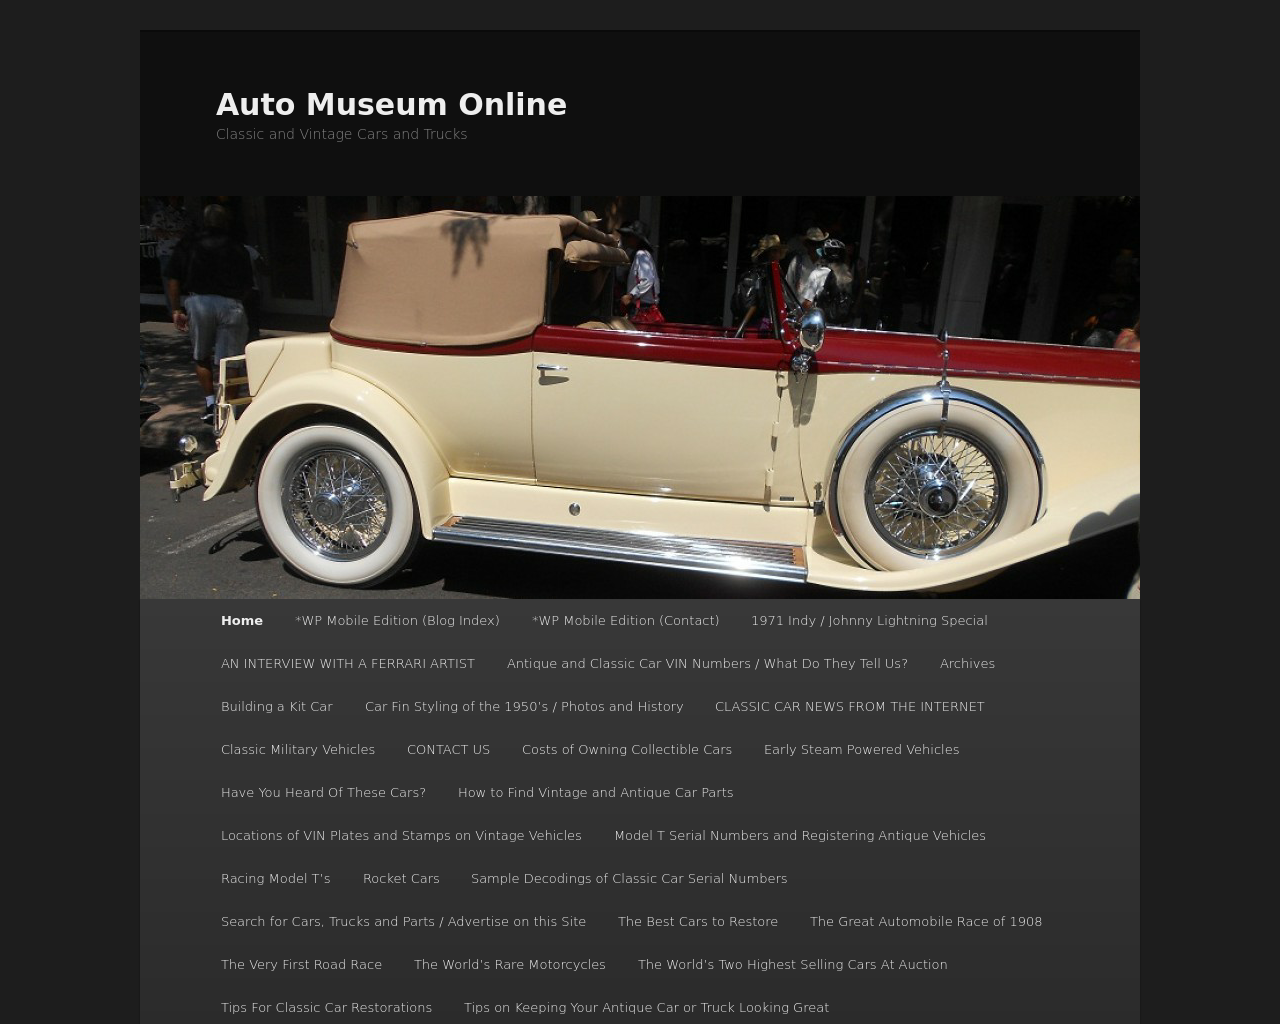 Auto-Museum-Online-Advertising-Reviews-Pricing